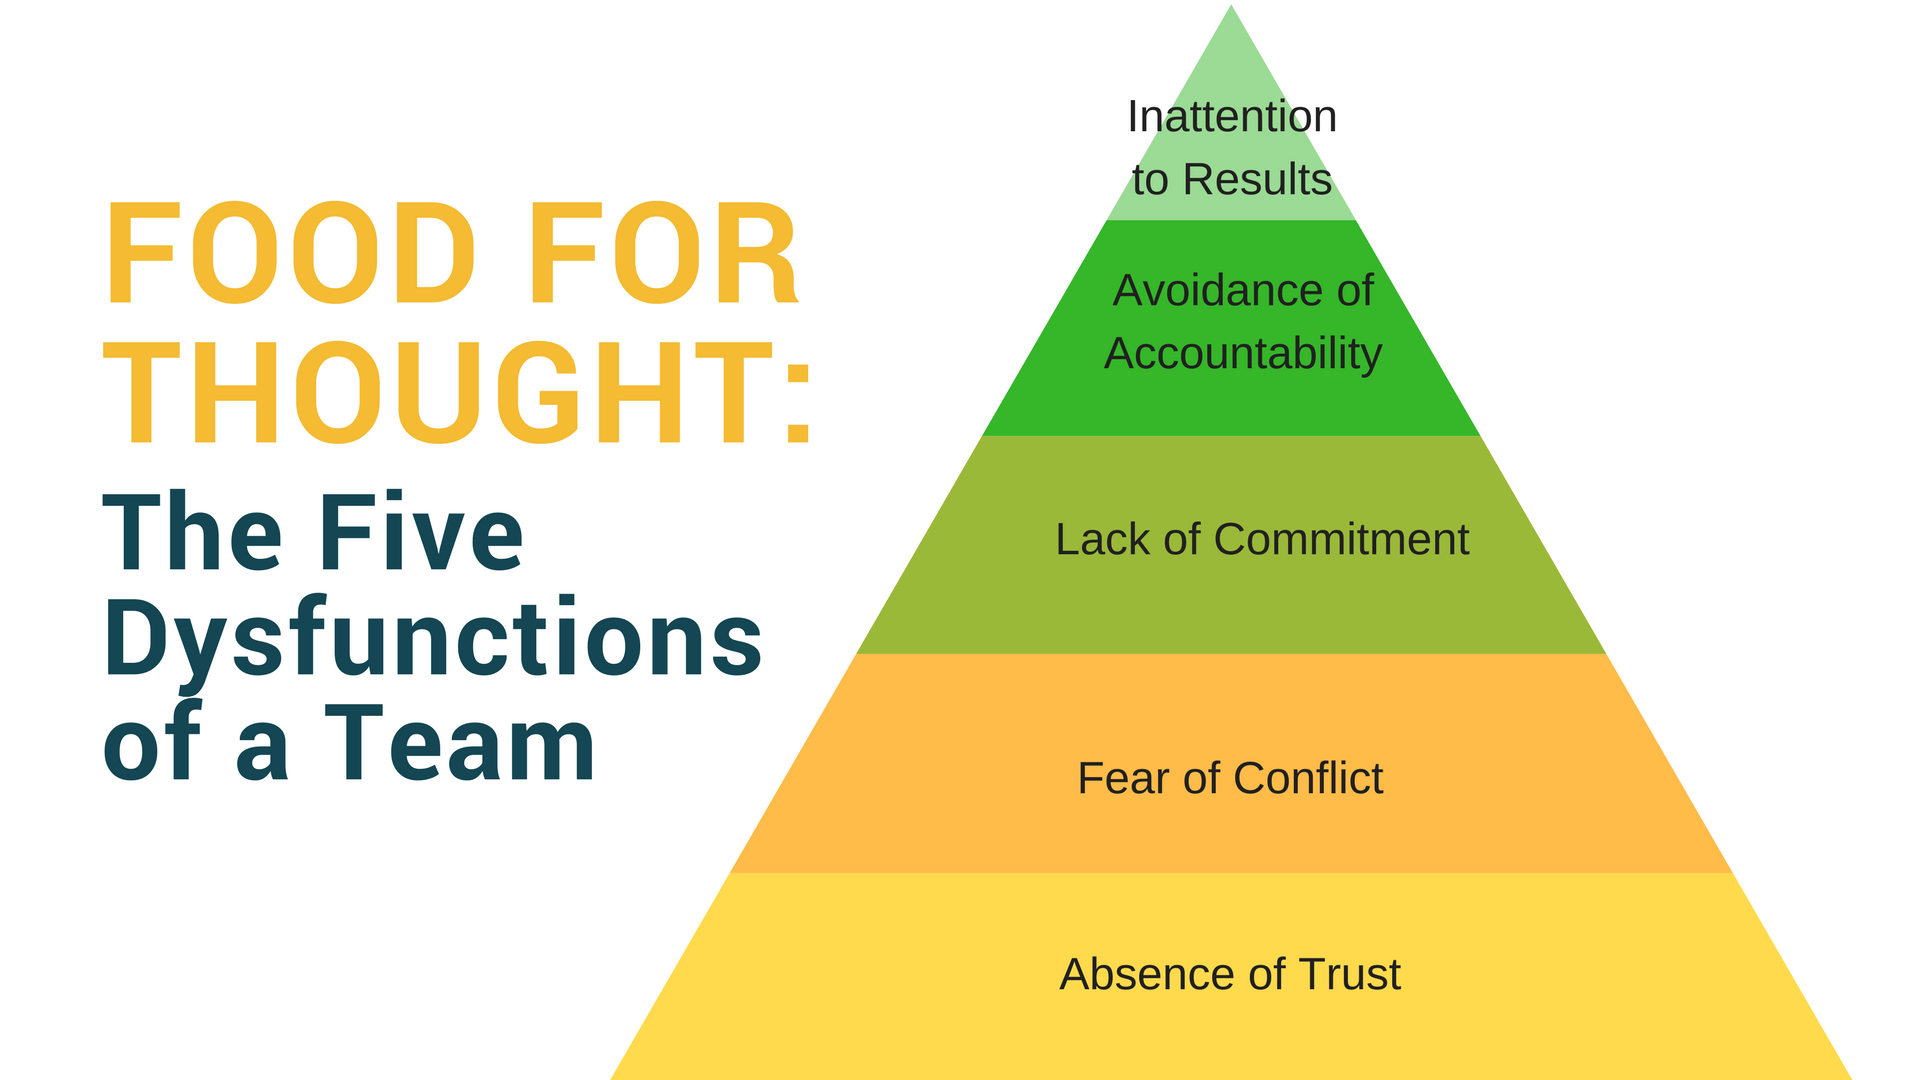 Food_for_Thought_-_The_Five_Dysfunctions_of_a_Team.png